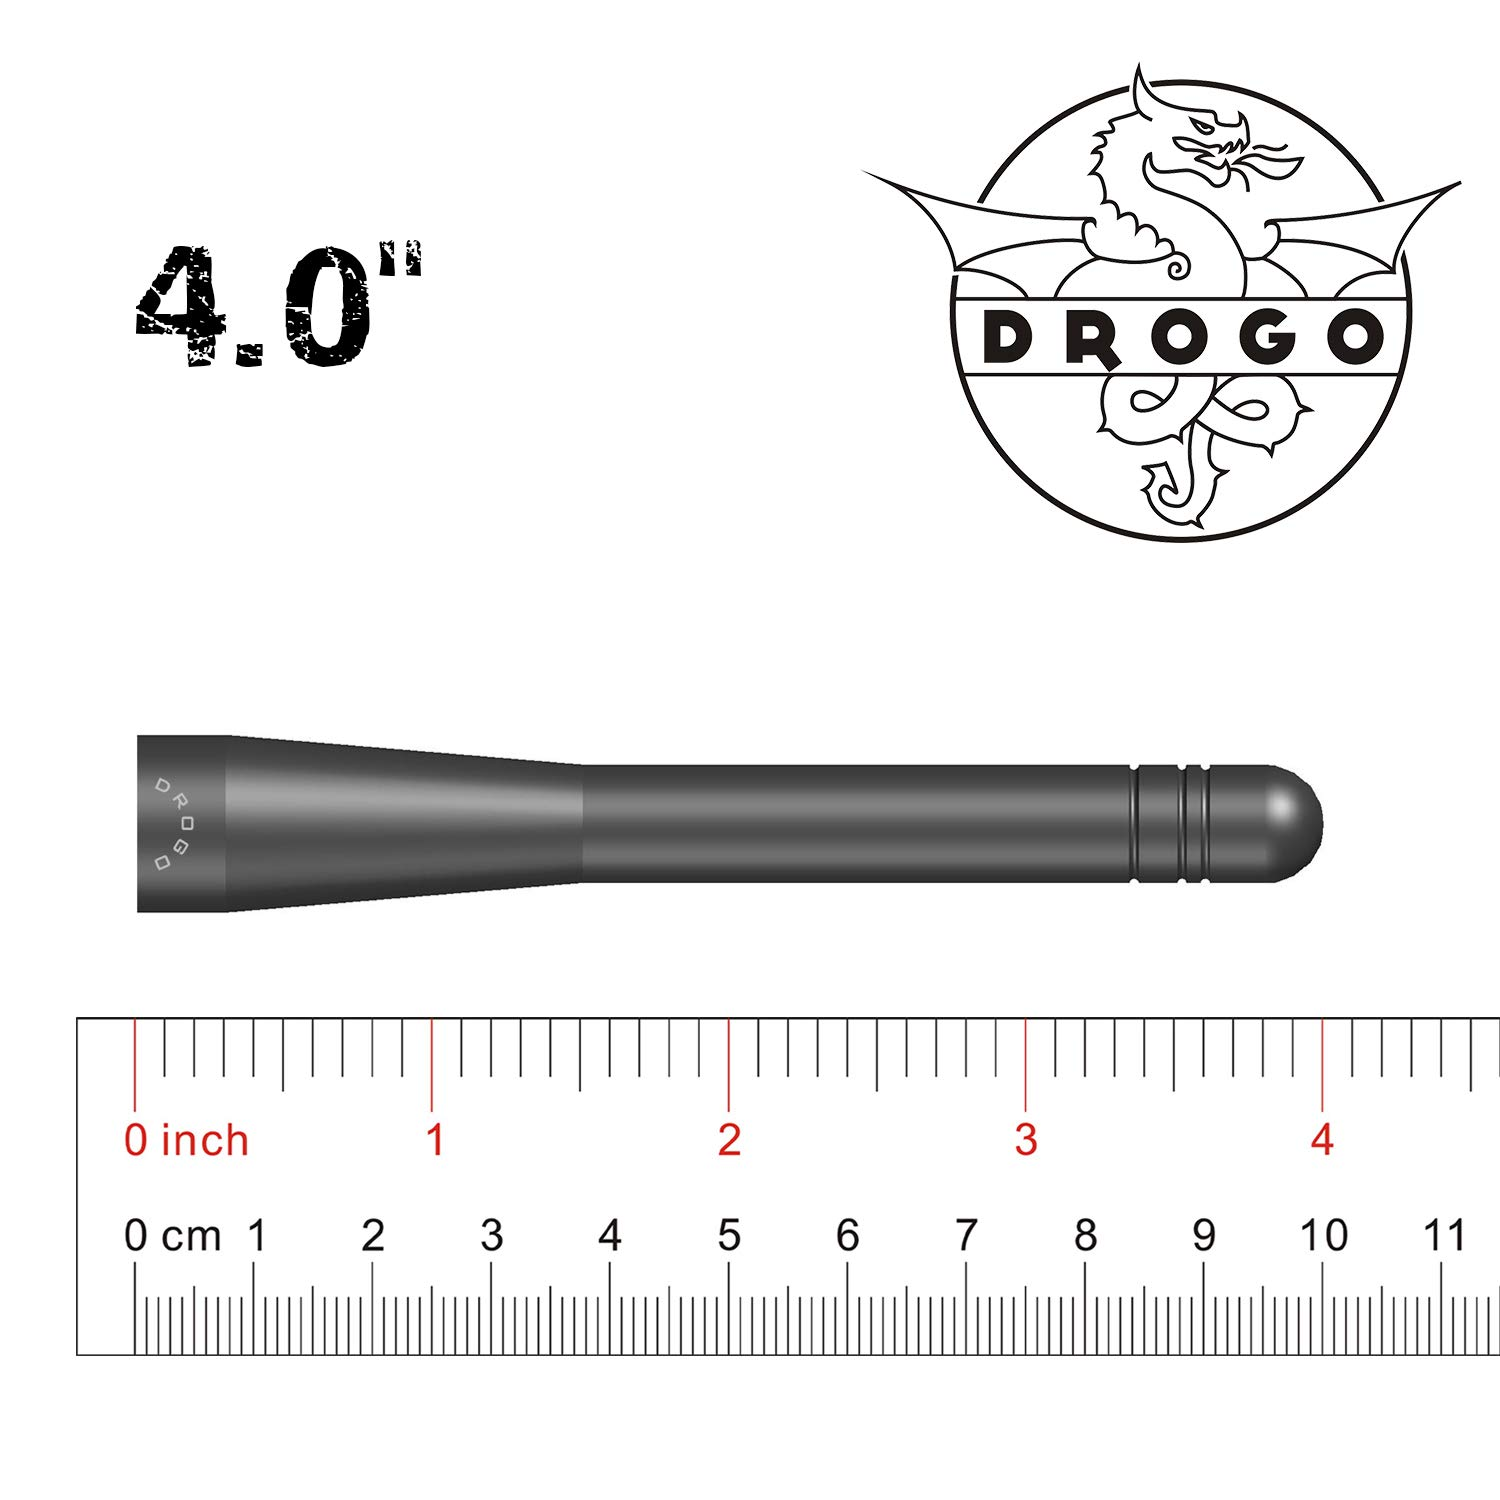 Mineral Grey DROGO 4 StandX Replacement Antenna for Ford F-150 1997-2018 FM//AM Reception Enhanced Tough Material Creative Design